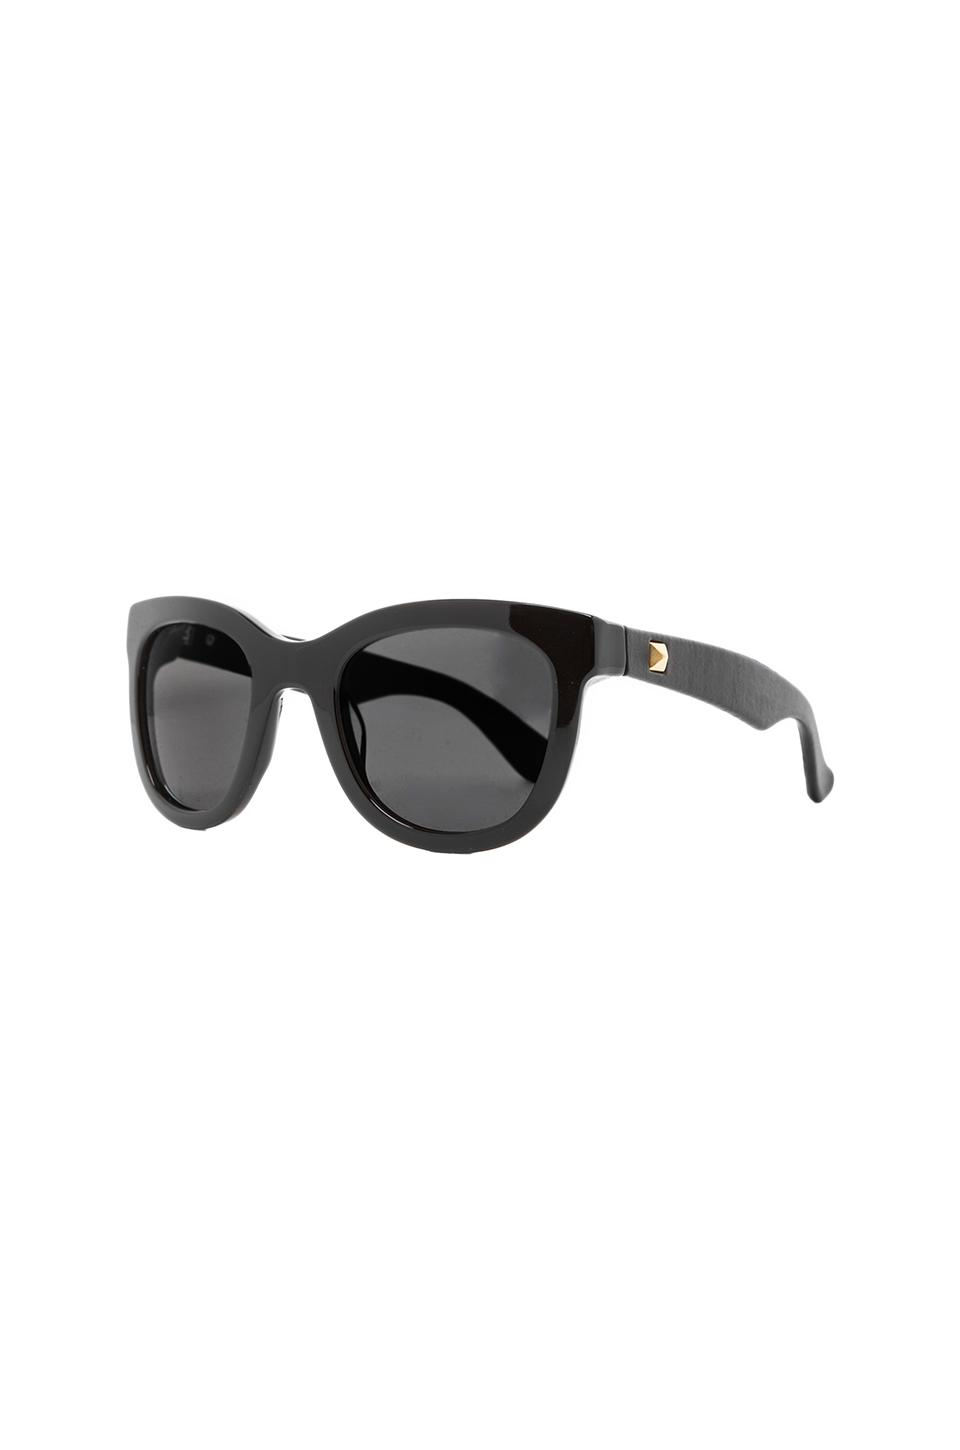 ANINE BING New York Sunglasses in Black | REVOLVE